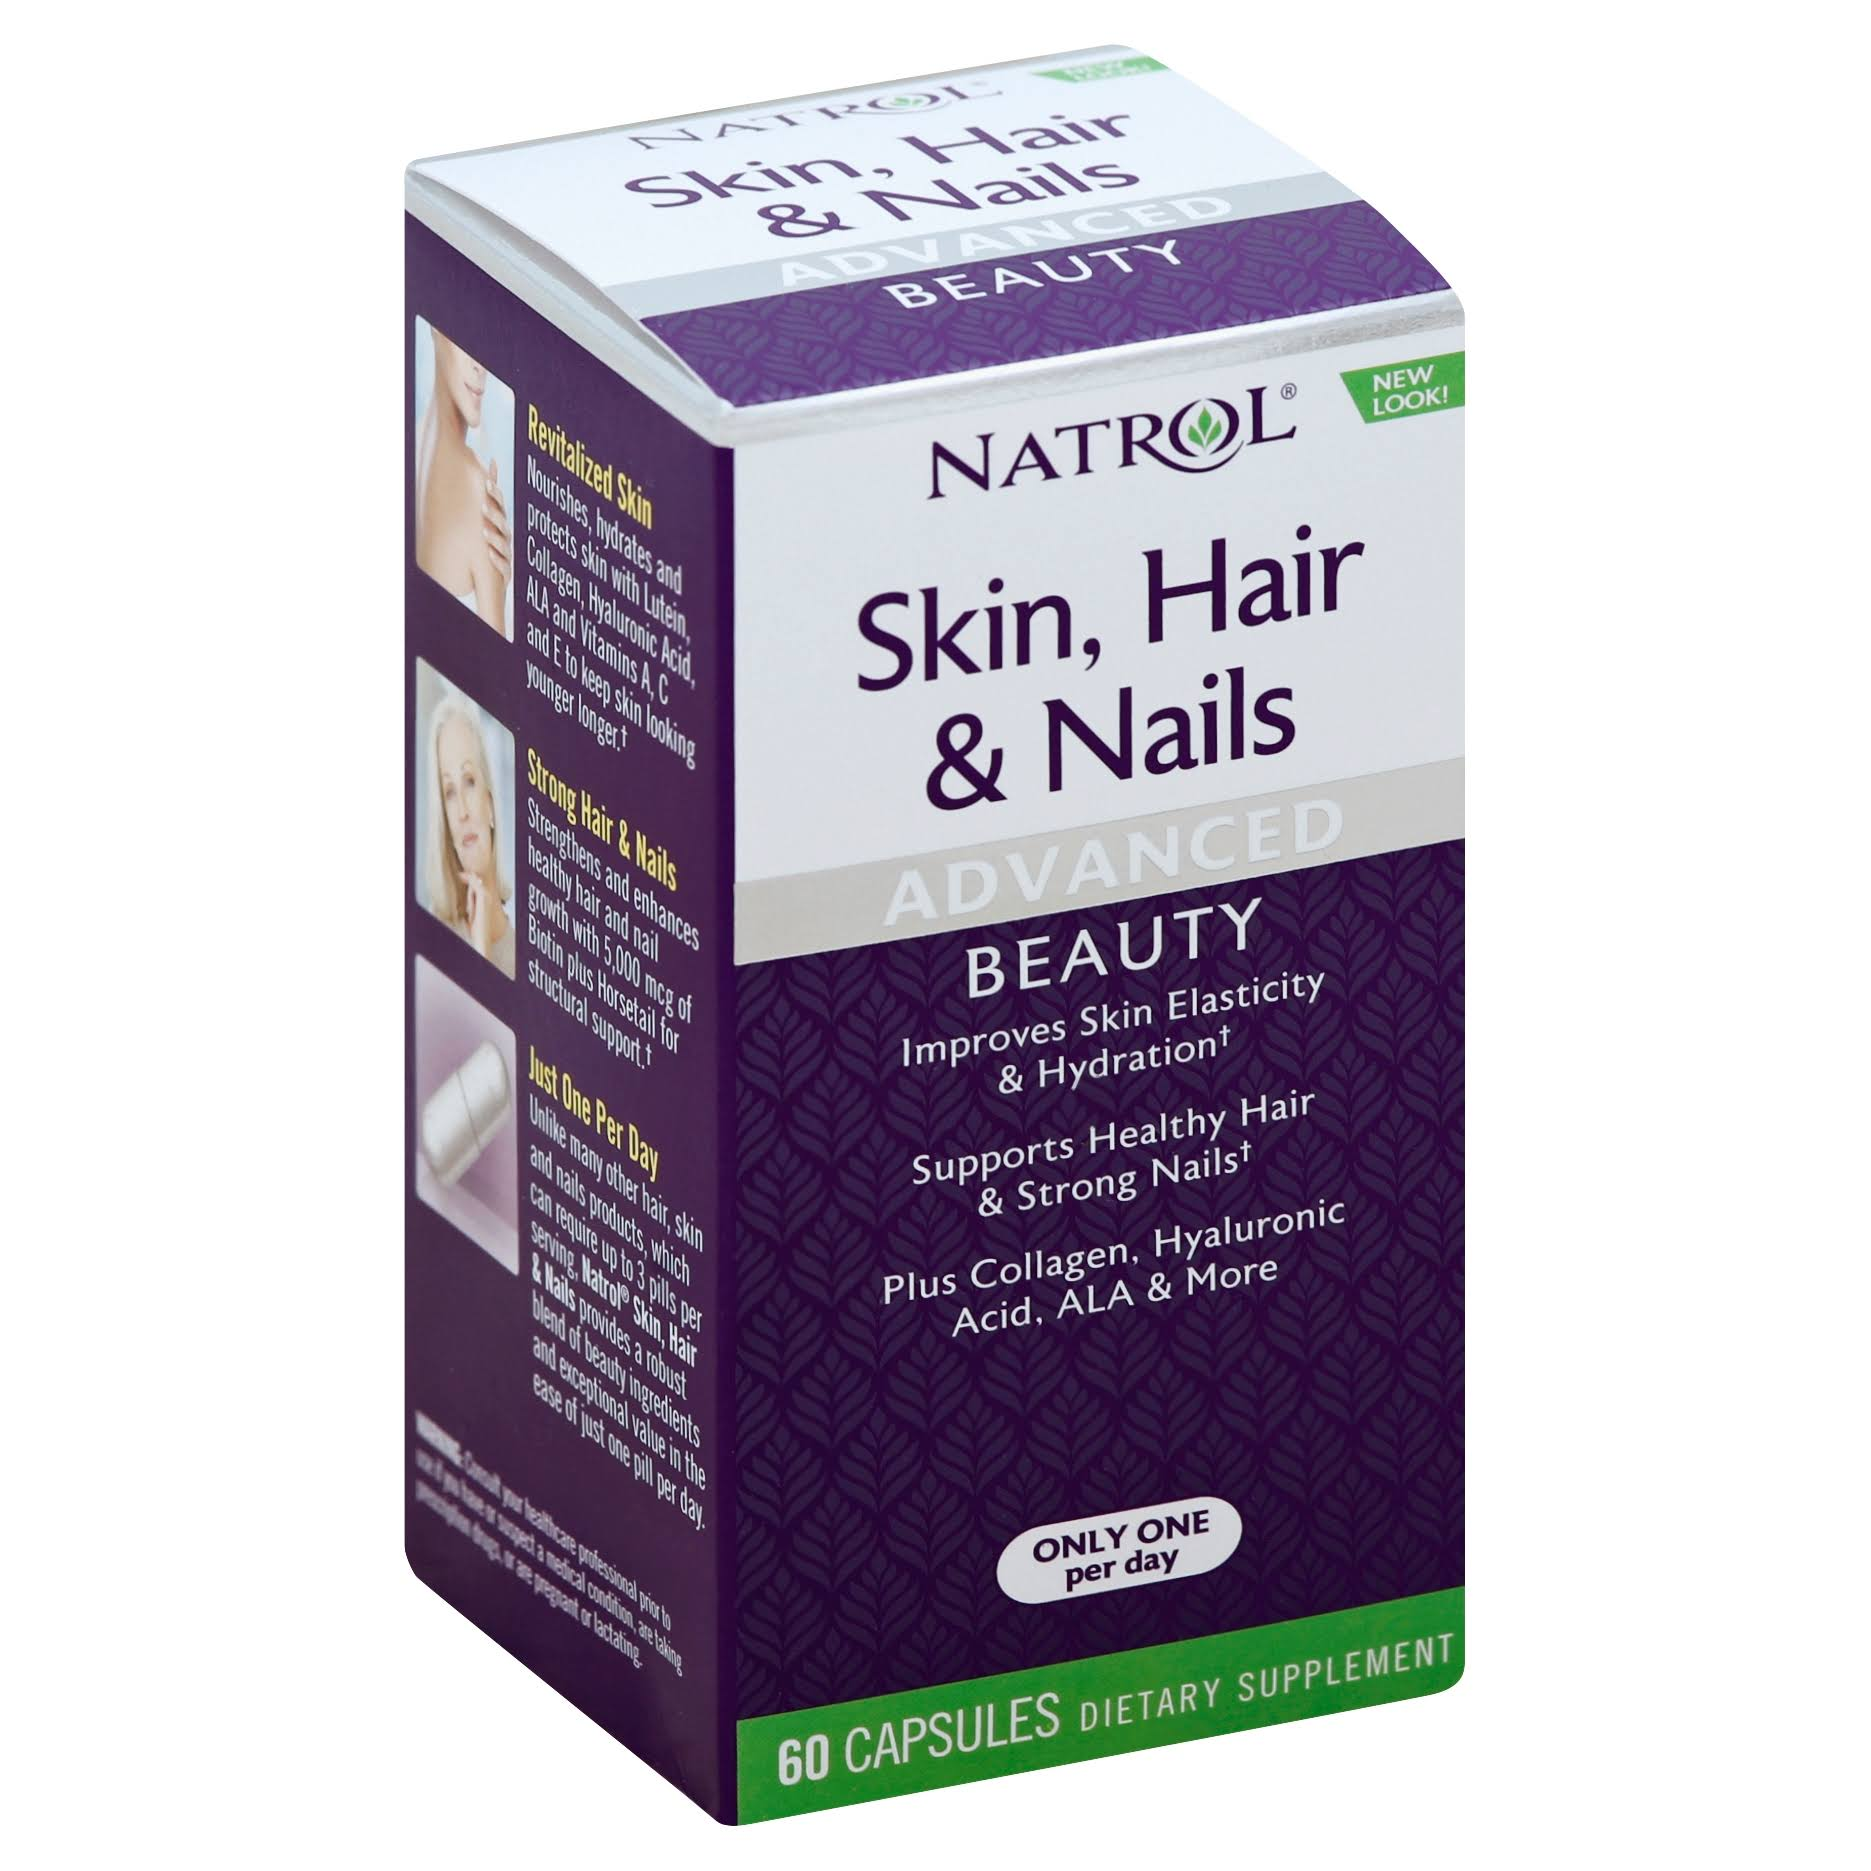 Natrol Skin Hair & Nails - 60 Capsules